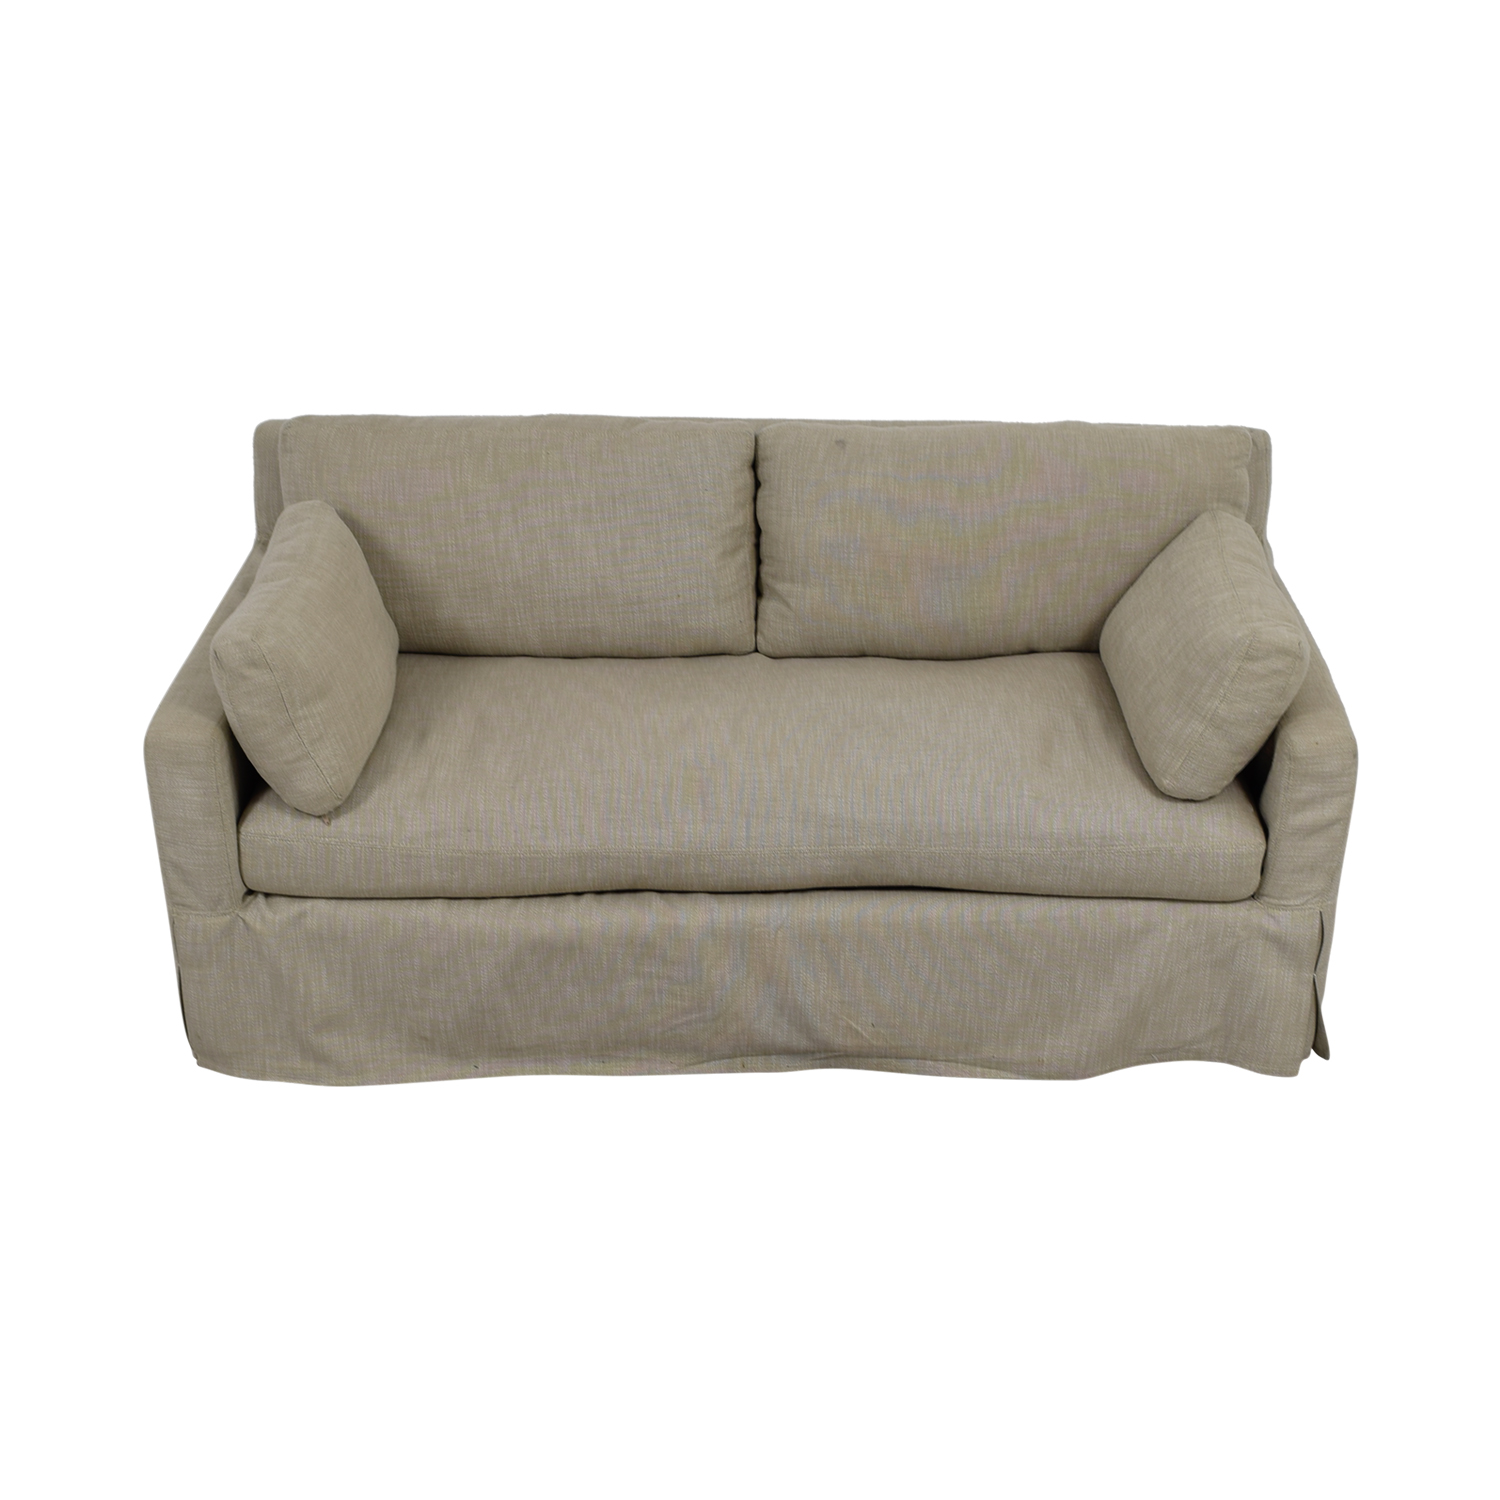 Restoration Hardware Belgian Beige Track Arm Slipcovered Sofa / Sofas